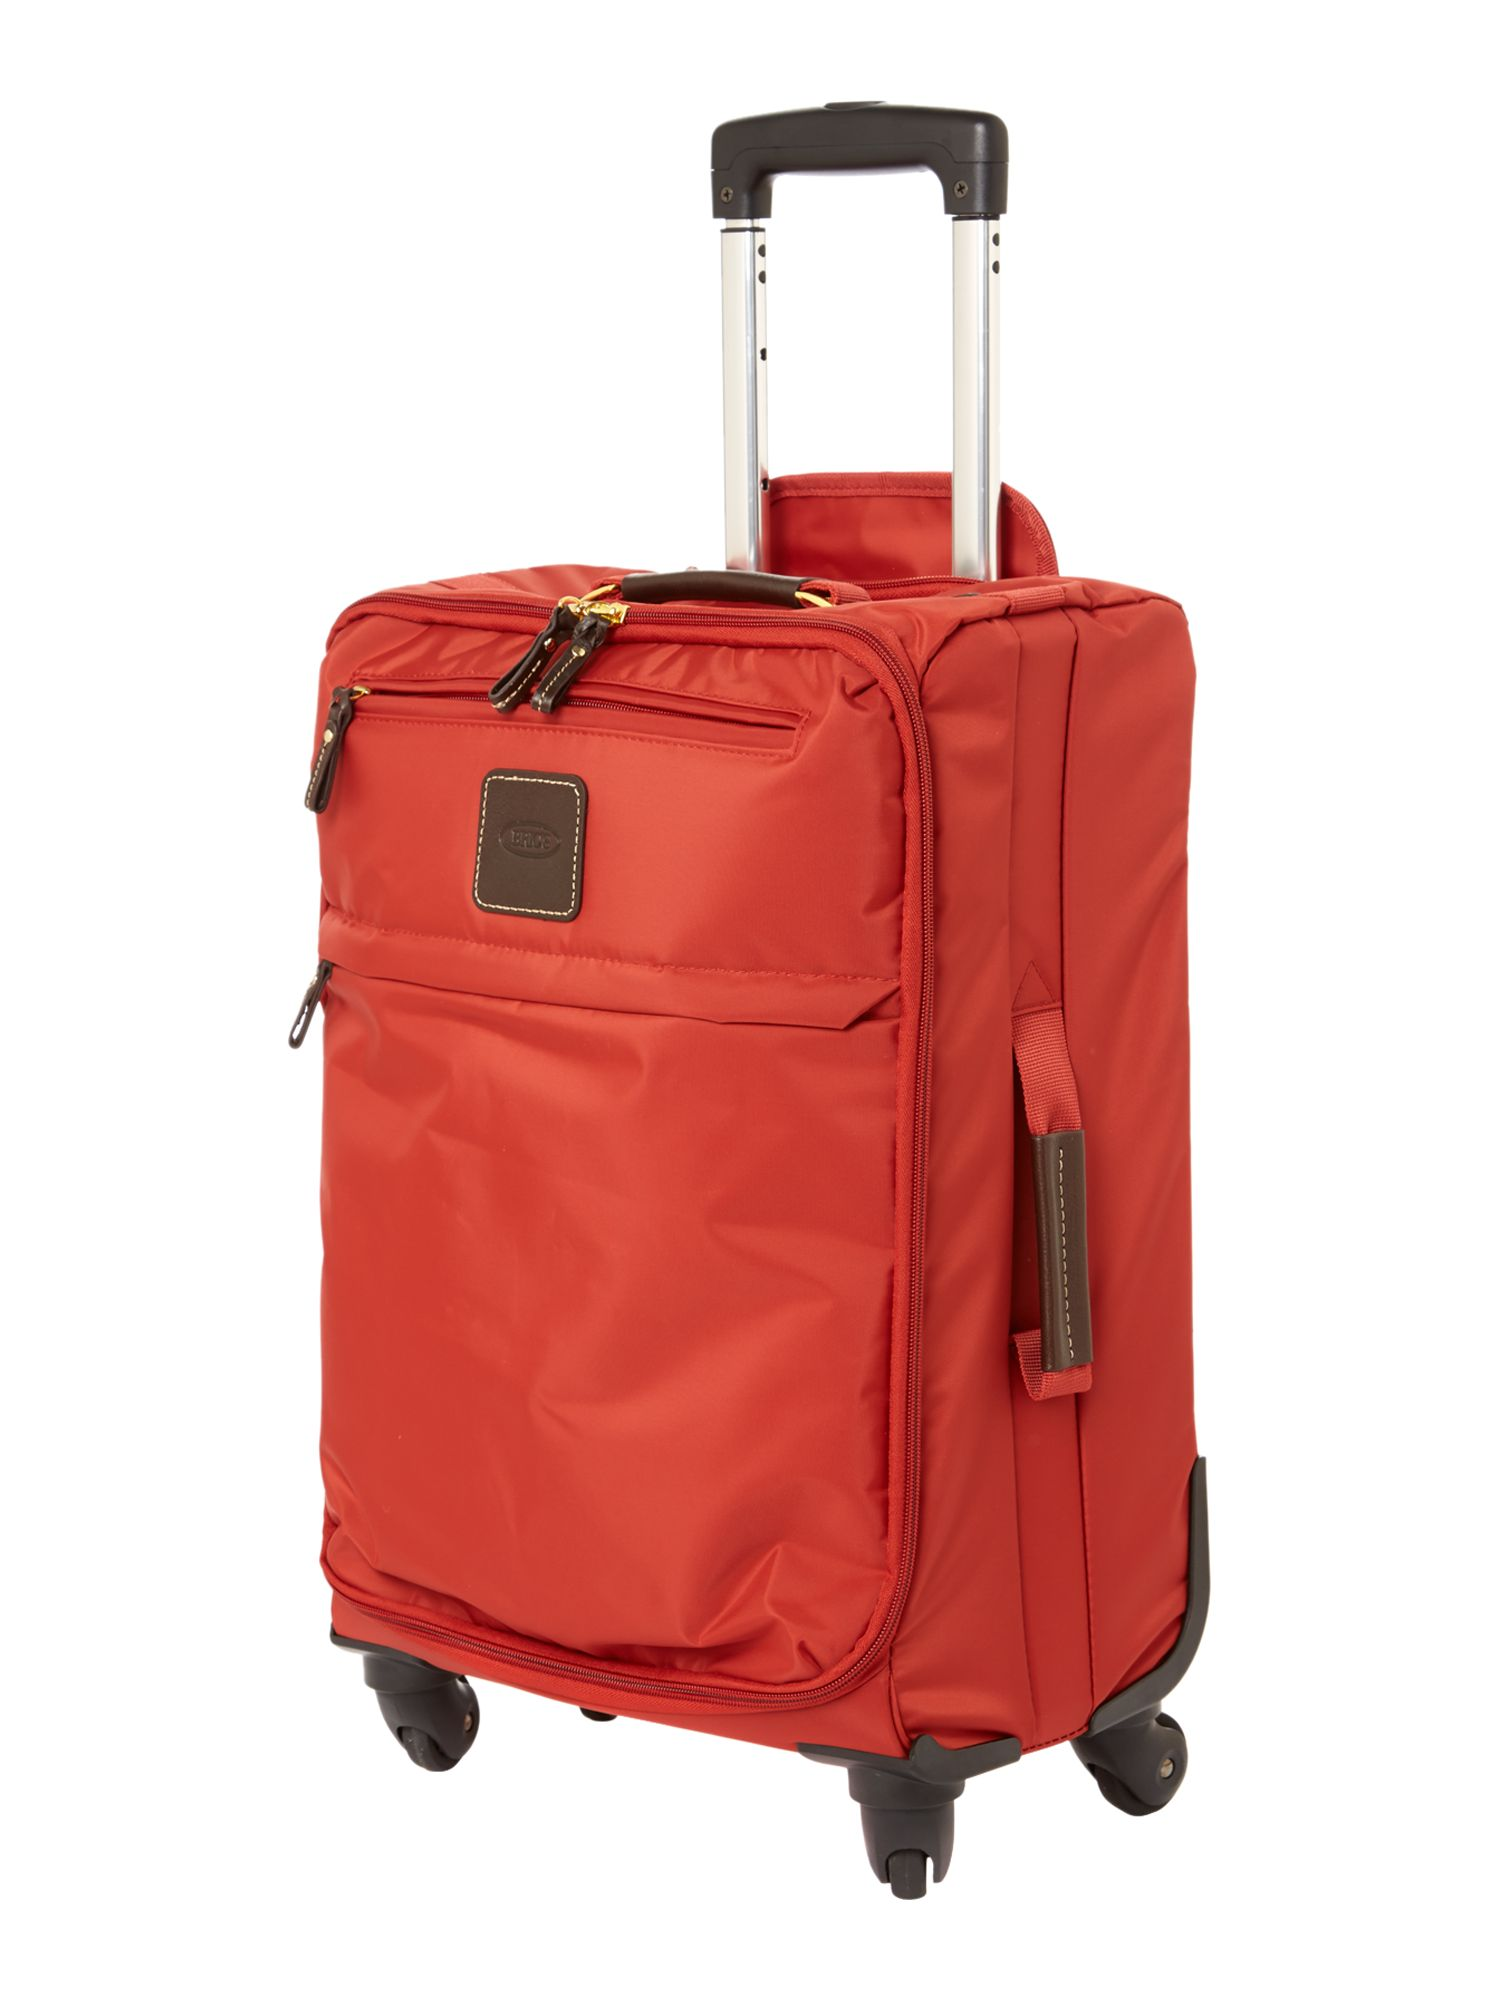 X Travel cannella lightweight 4 wheel case